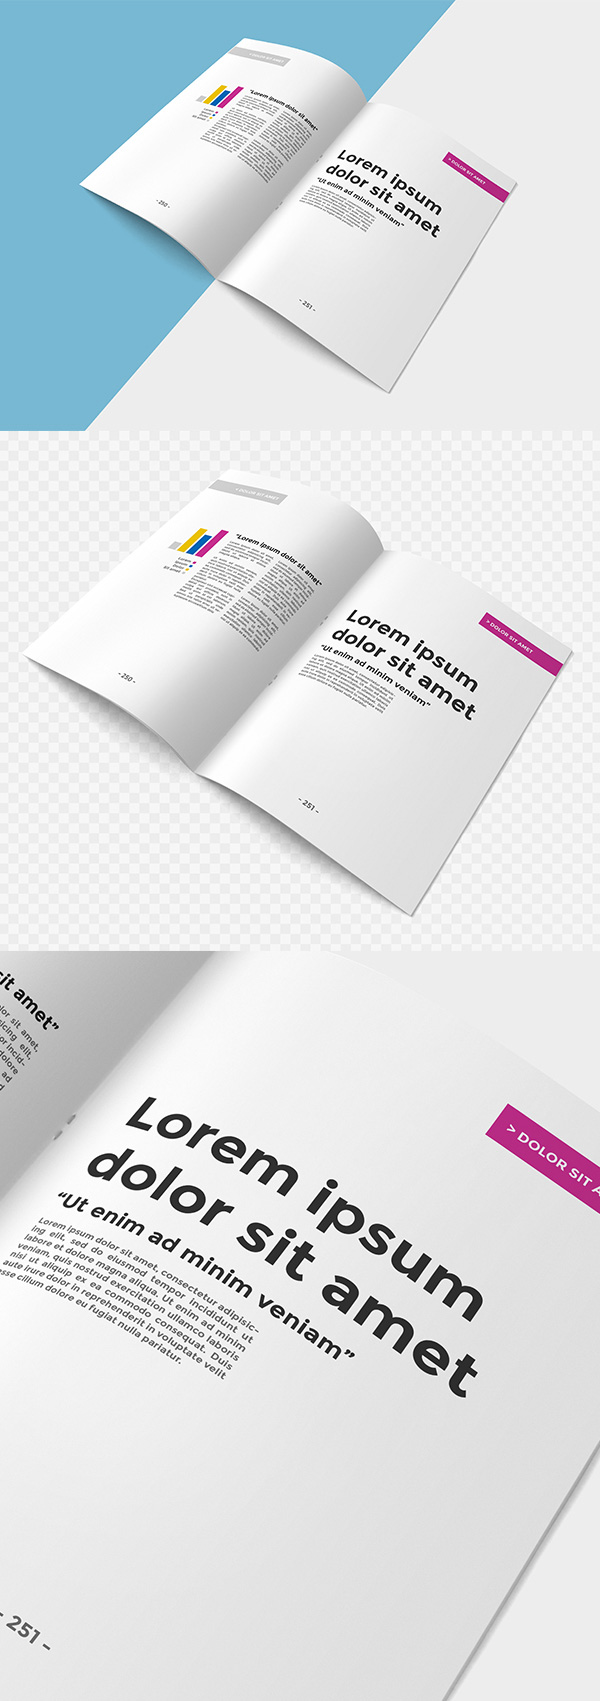 75 free psd magazine book cover brochure mock ups